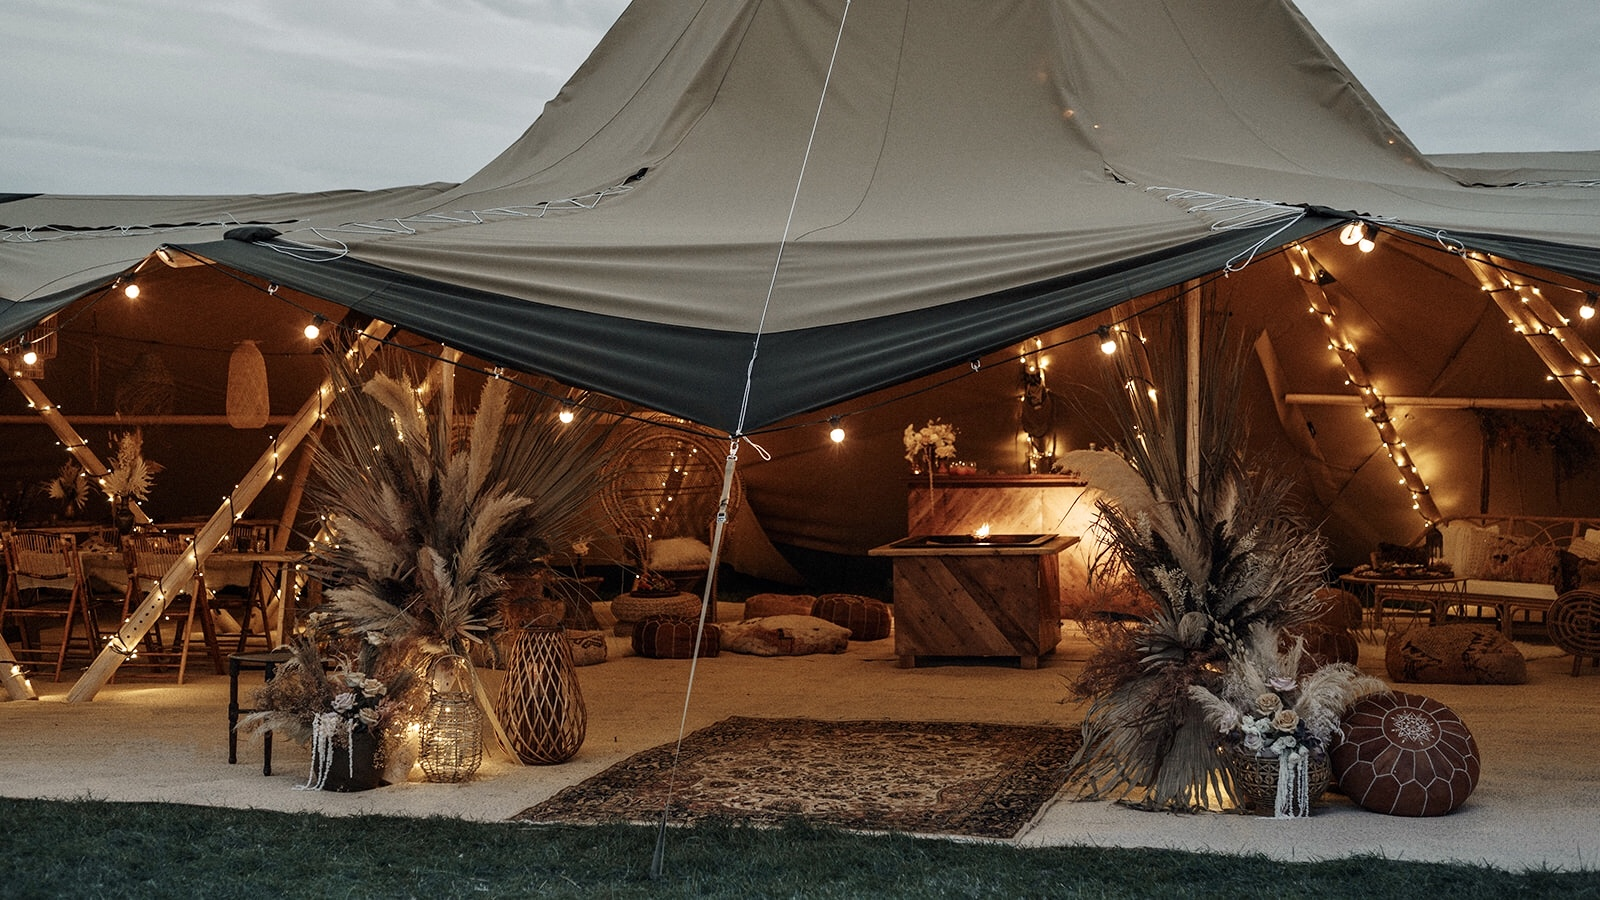 Tipi interiors at night